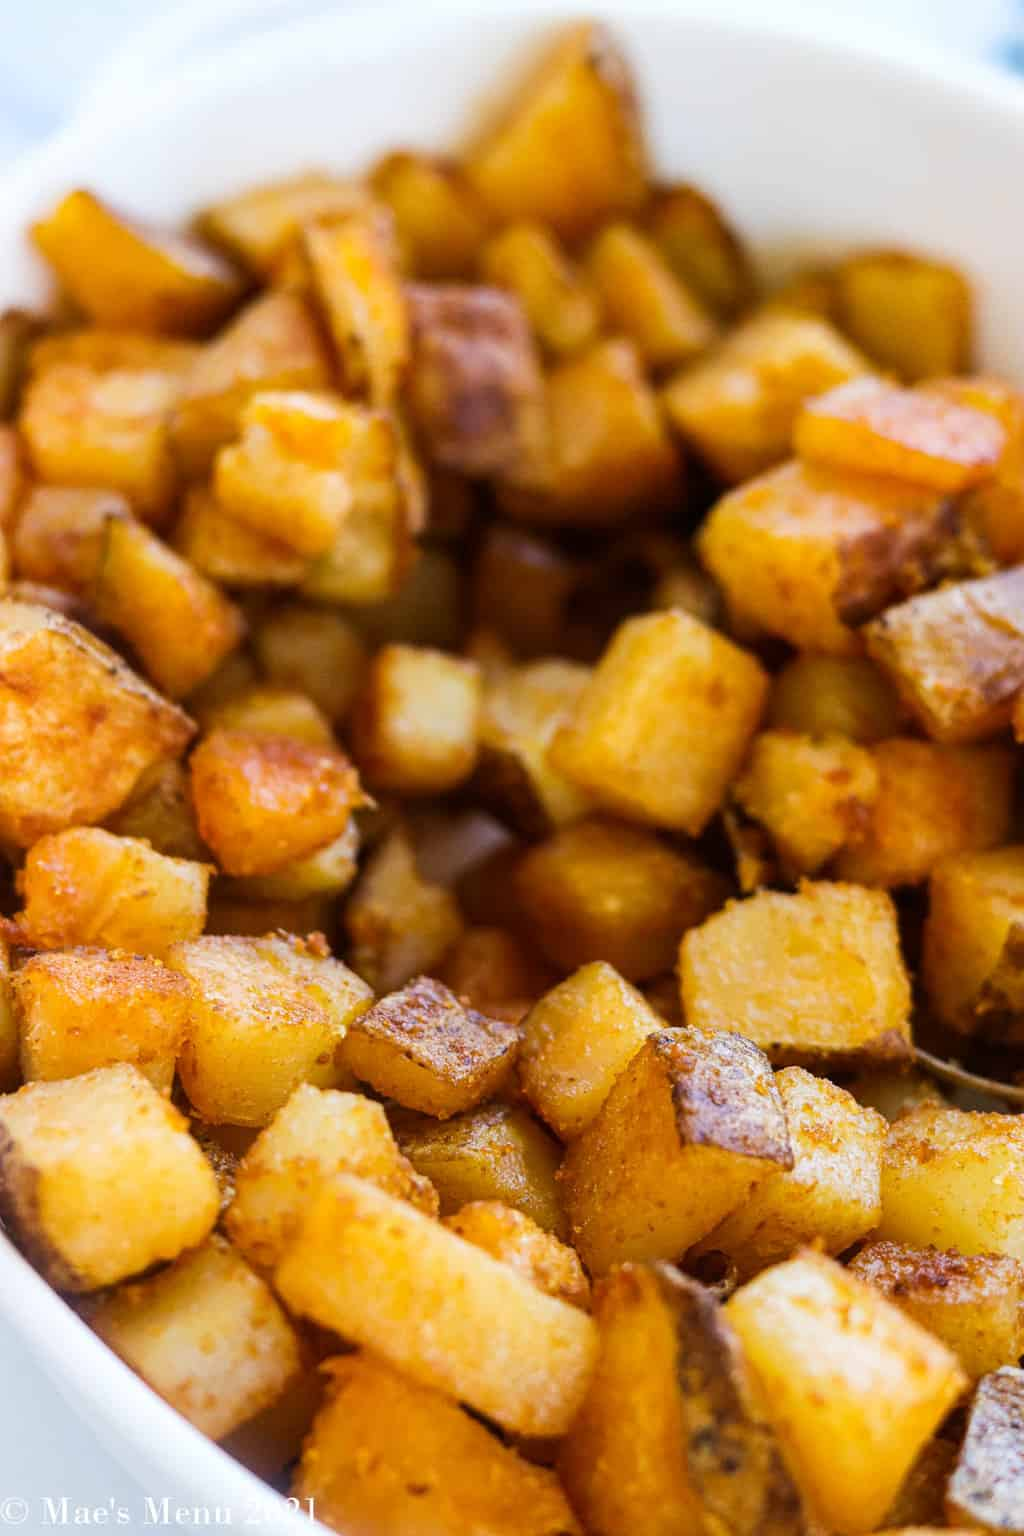 An up-close shot of home fries in a white bowl